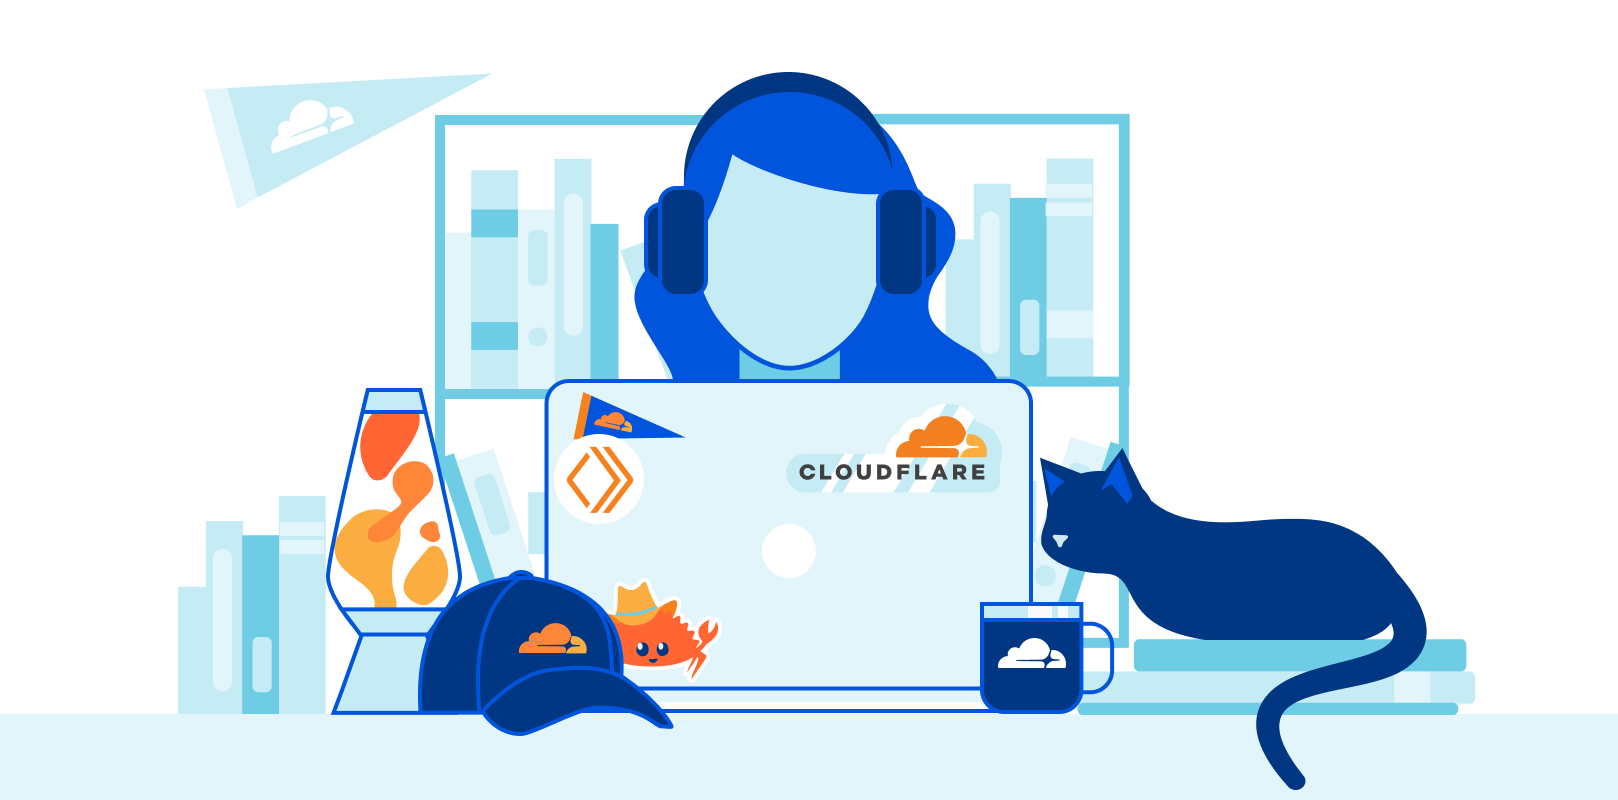 Building the Cloudflare Summer Challenge Application